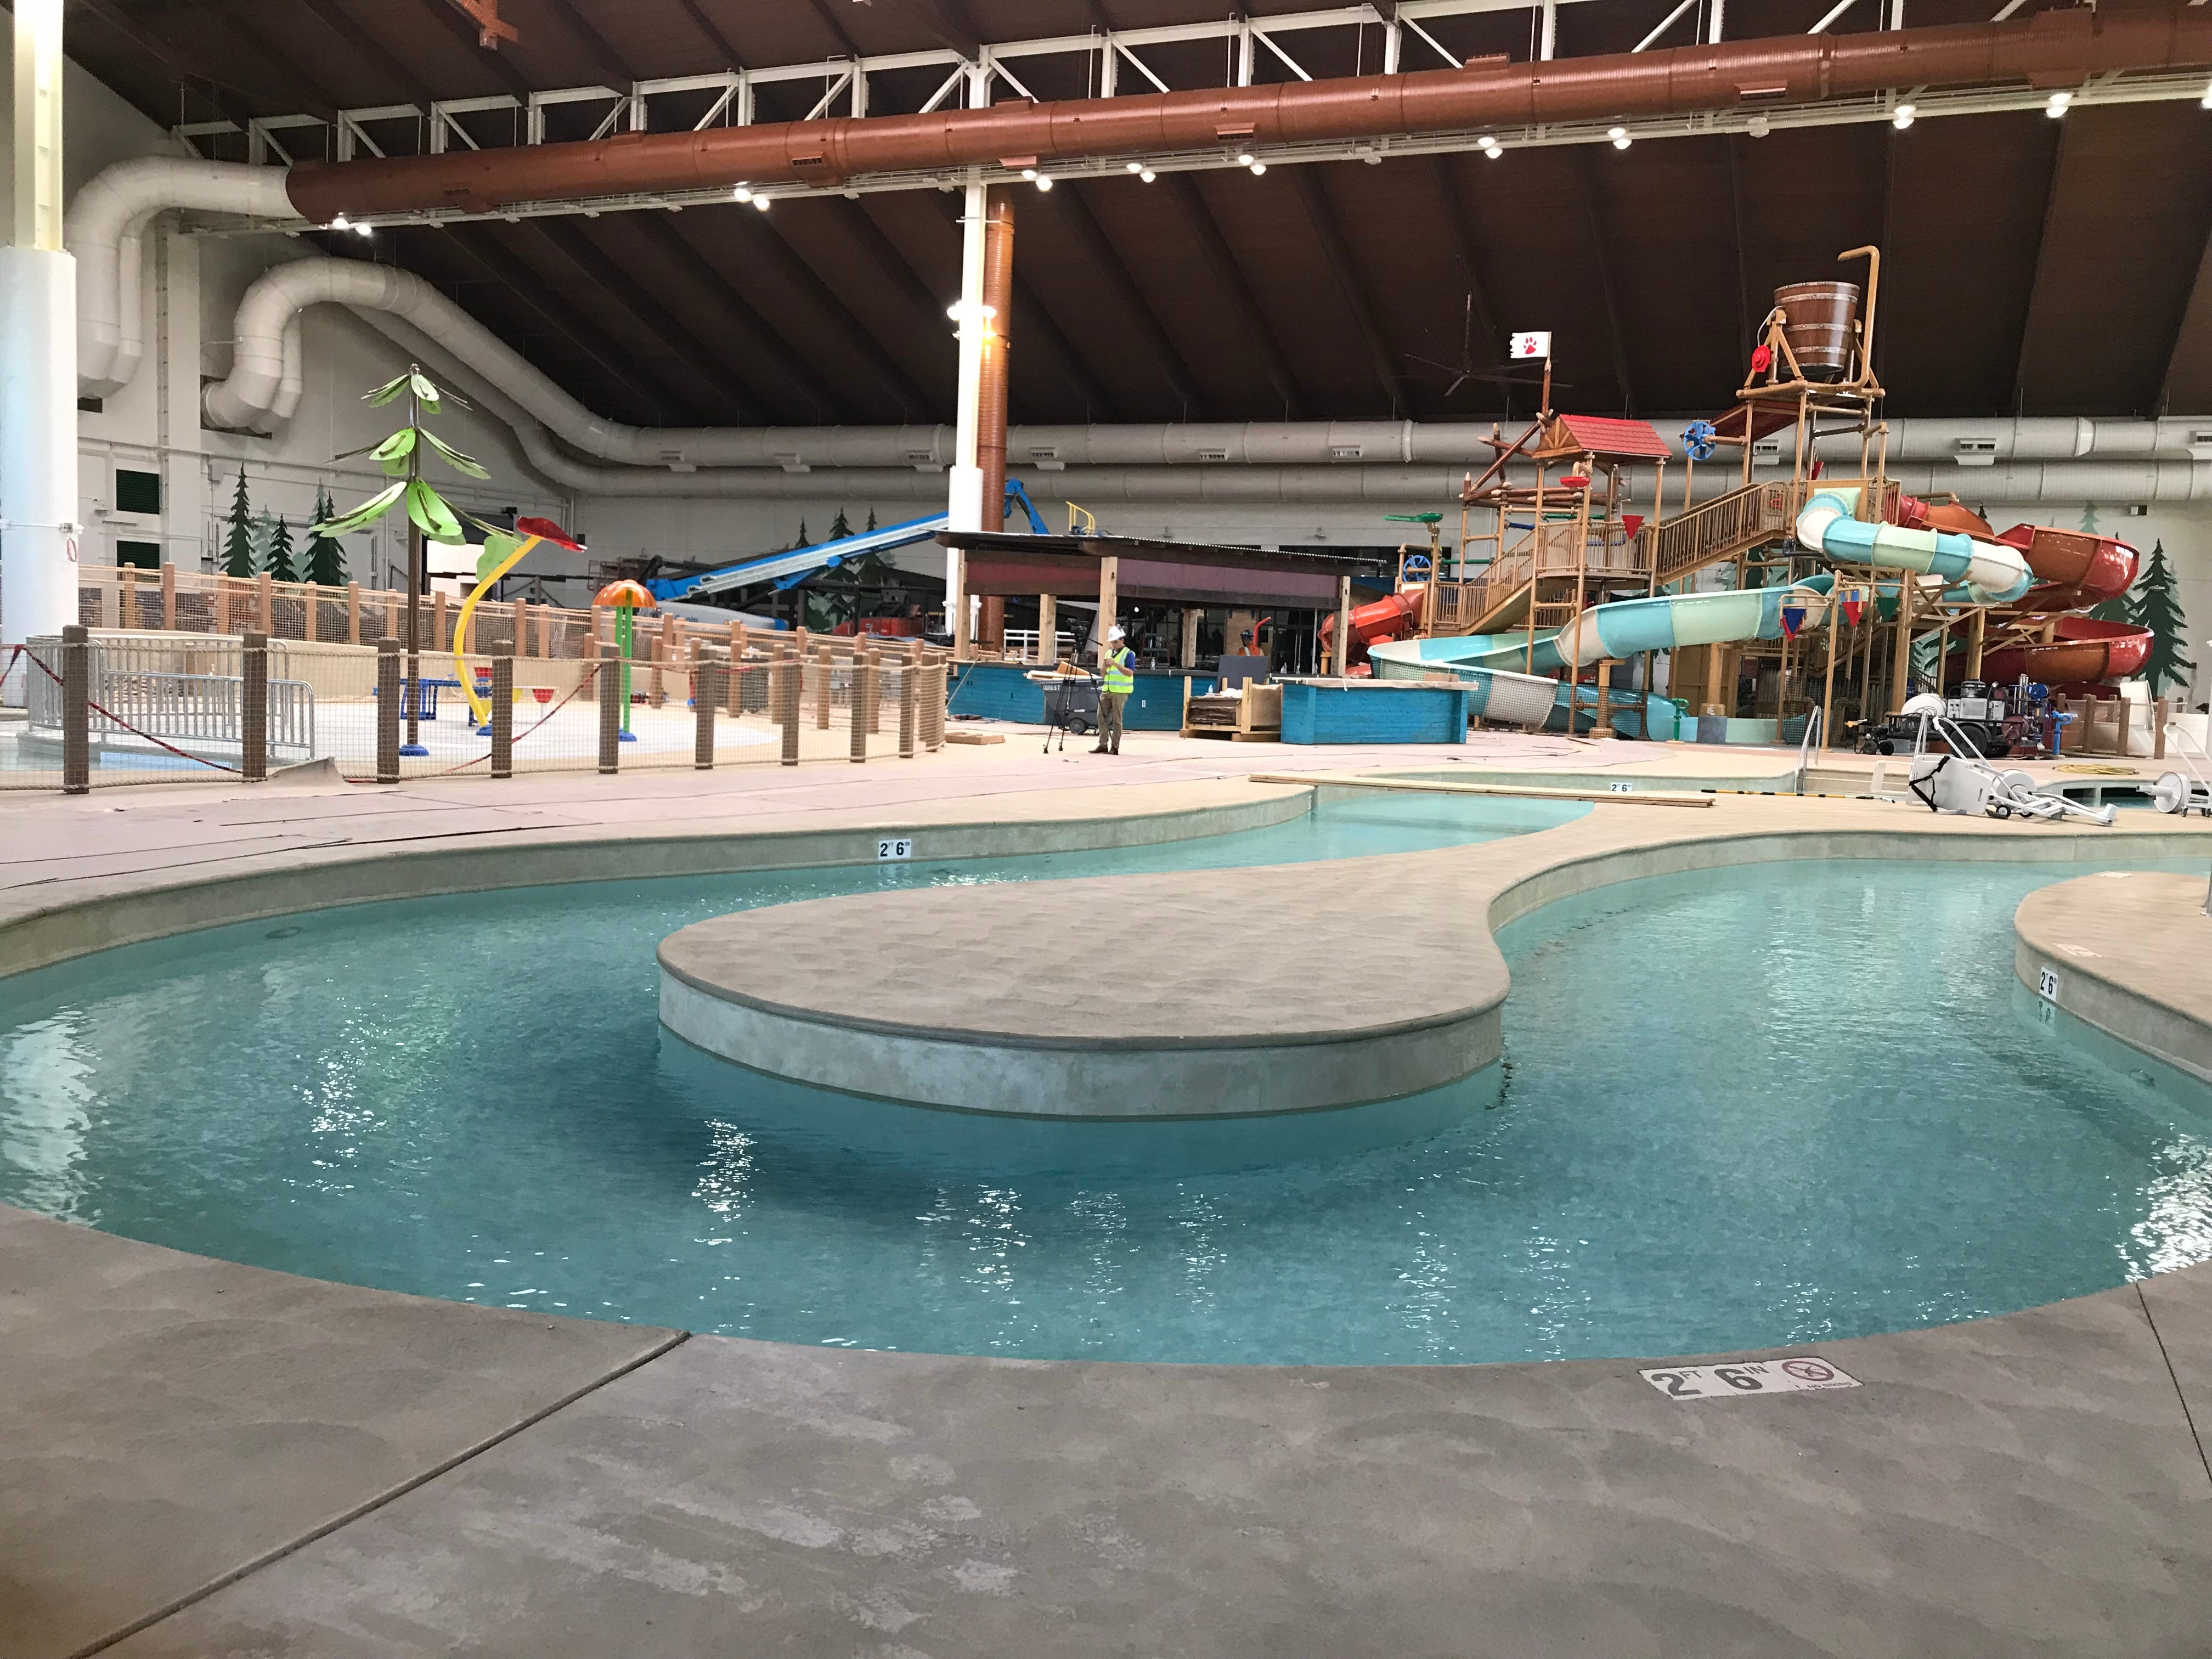 Great Wolf Lodge, known for its indoor water parks, is opening in Arizona with 50% off sale